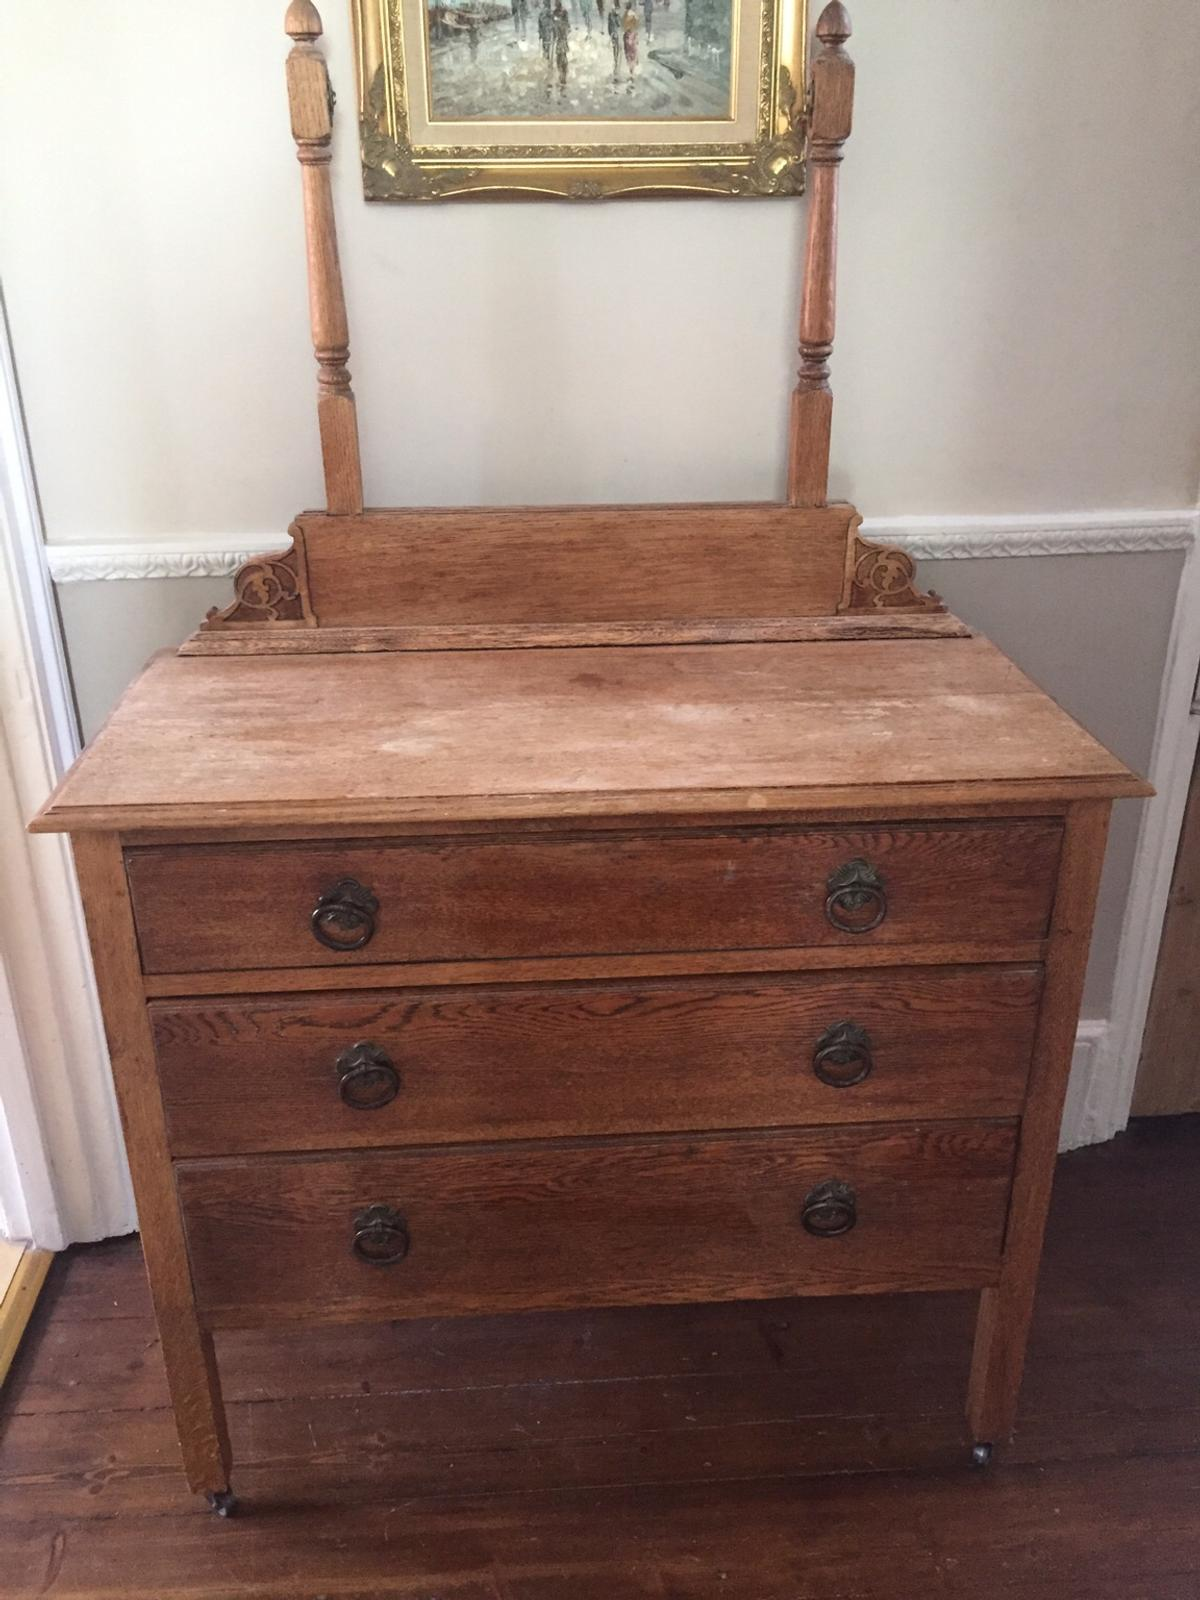 Solid Oak well built Victorian dressing table. Just needs new glass on mirror board. Lovely project. Dimensions-92cm (L) X 44 (D) X 82 ( H)